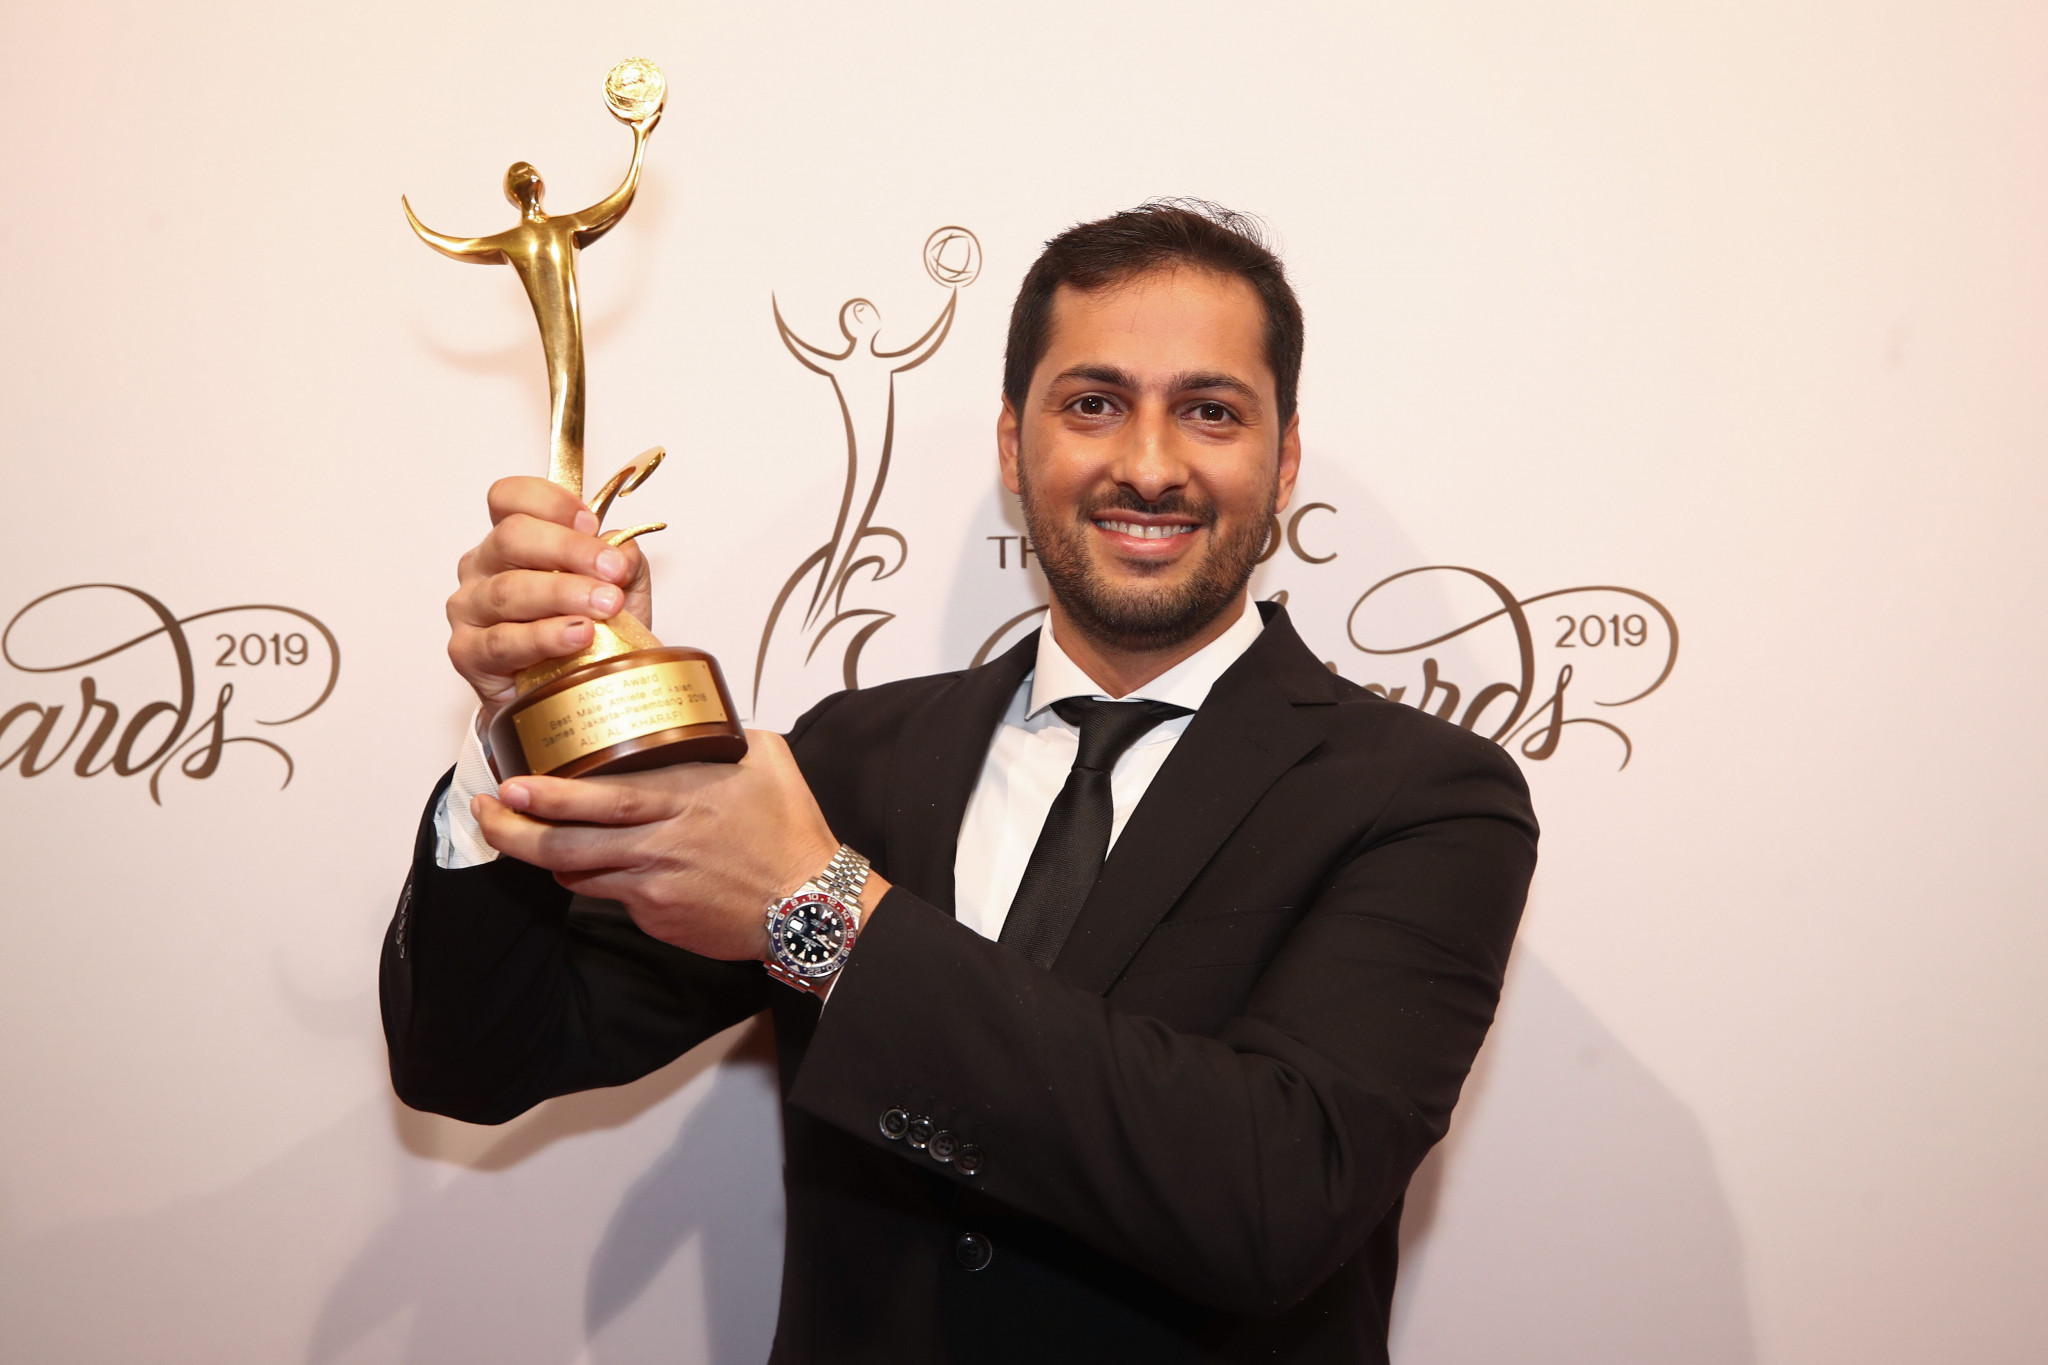 Kuwait's Ali Al-Khorafi dedicated his best male athlete of the Asian Games award to Sheikh Ahmed Al-Fahad Al-Sabah ©ANOC